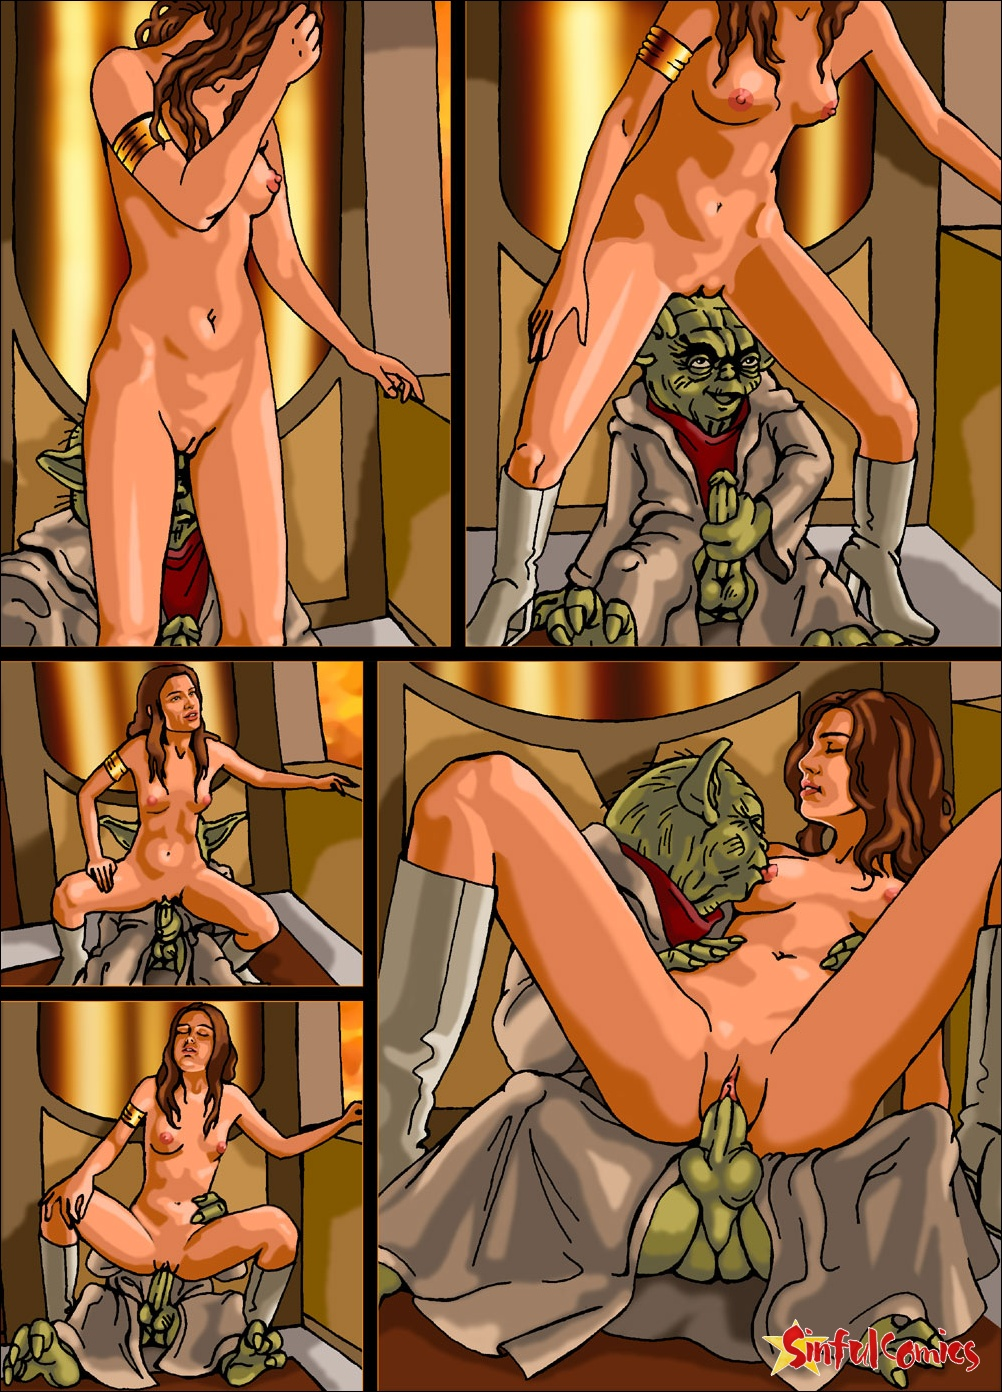 Free nude women of star wars fucks movie